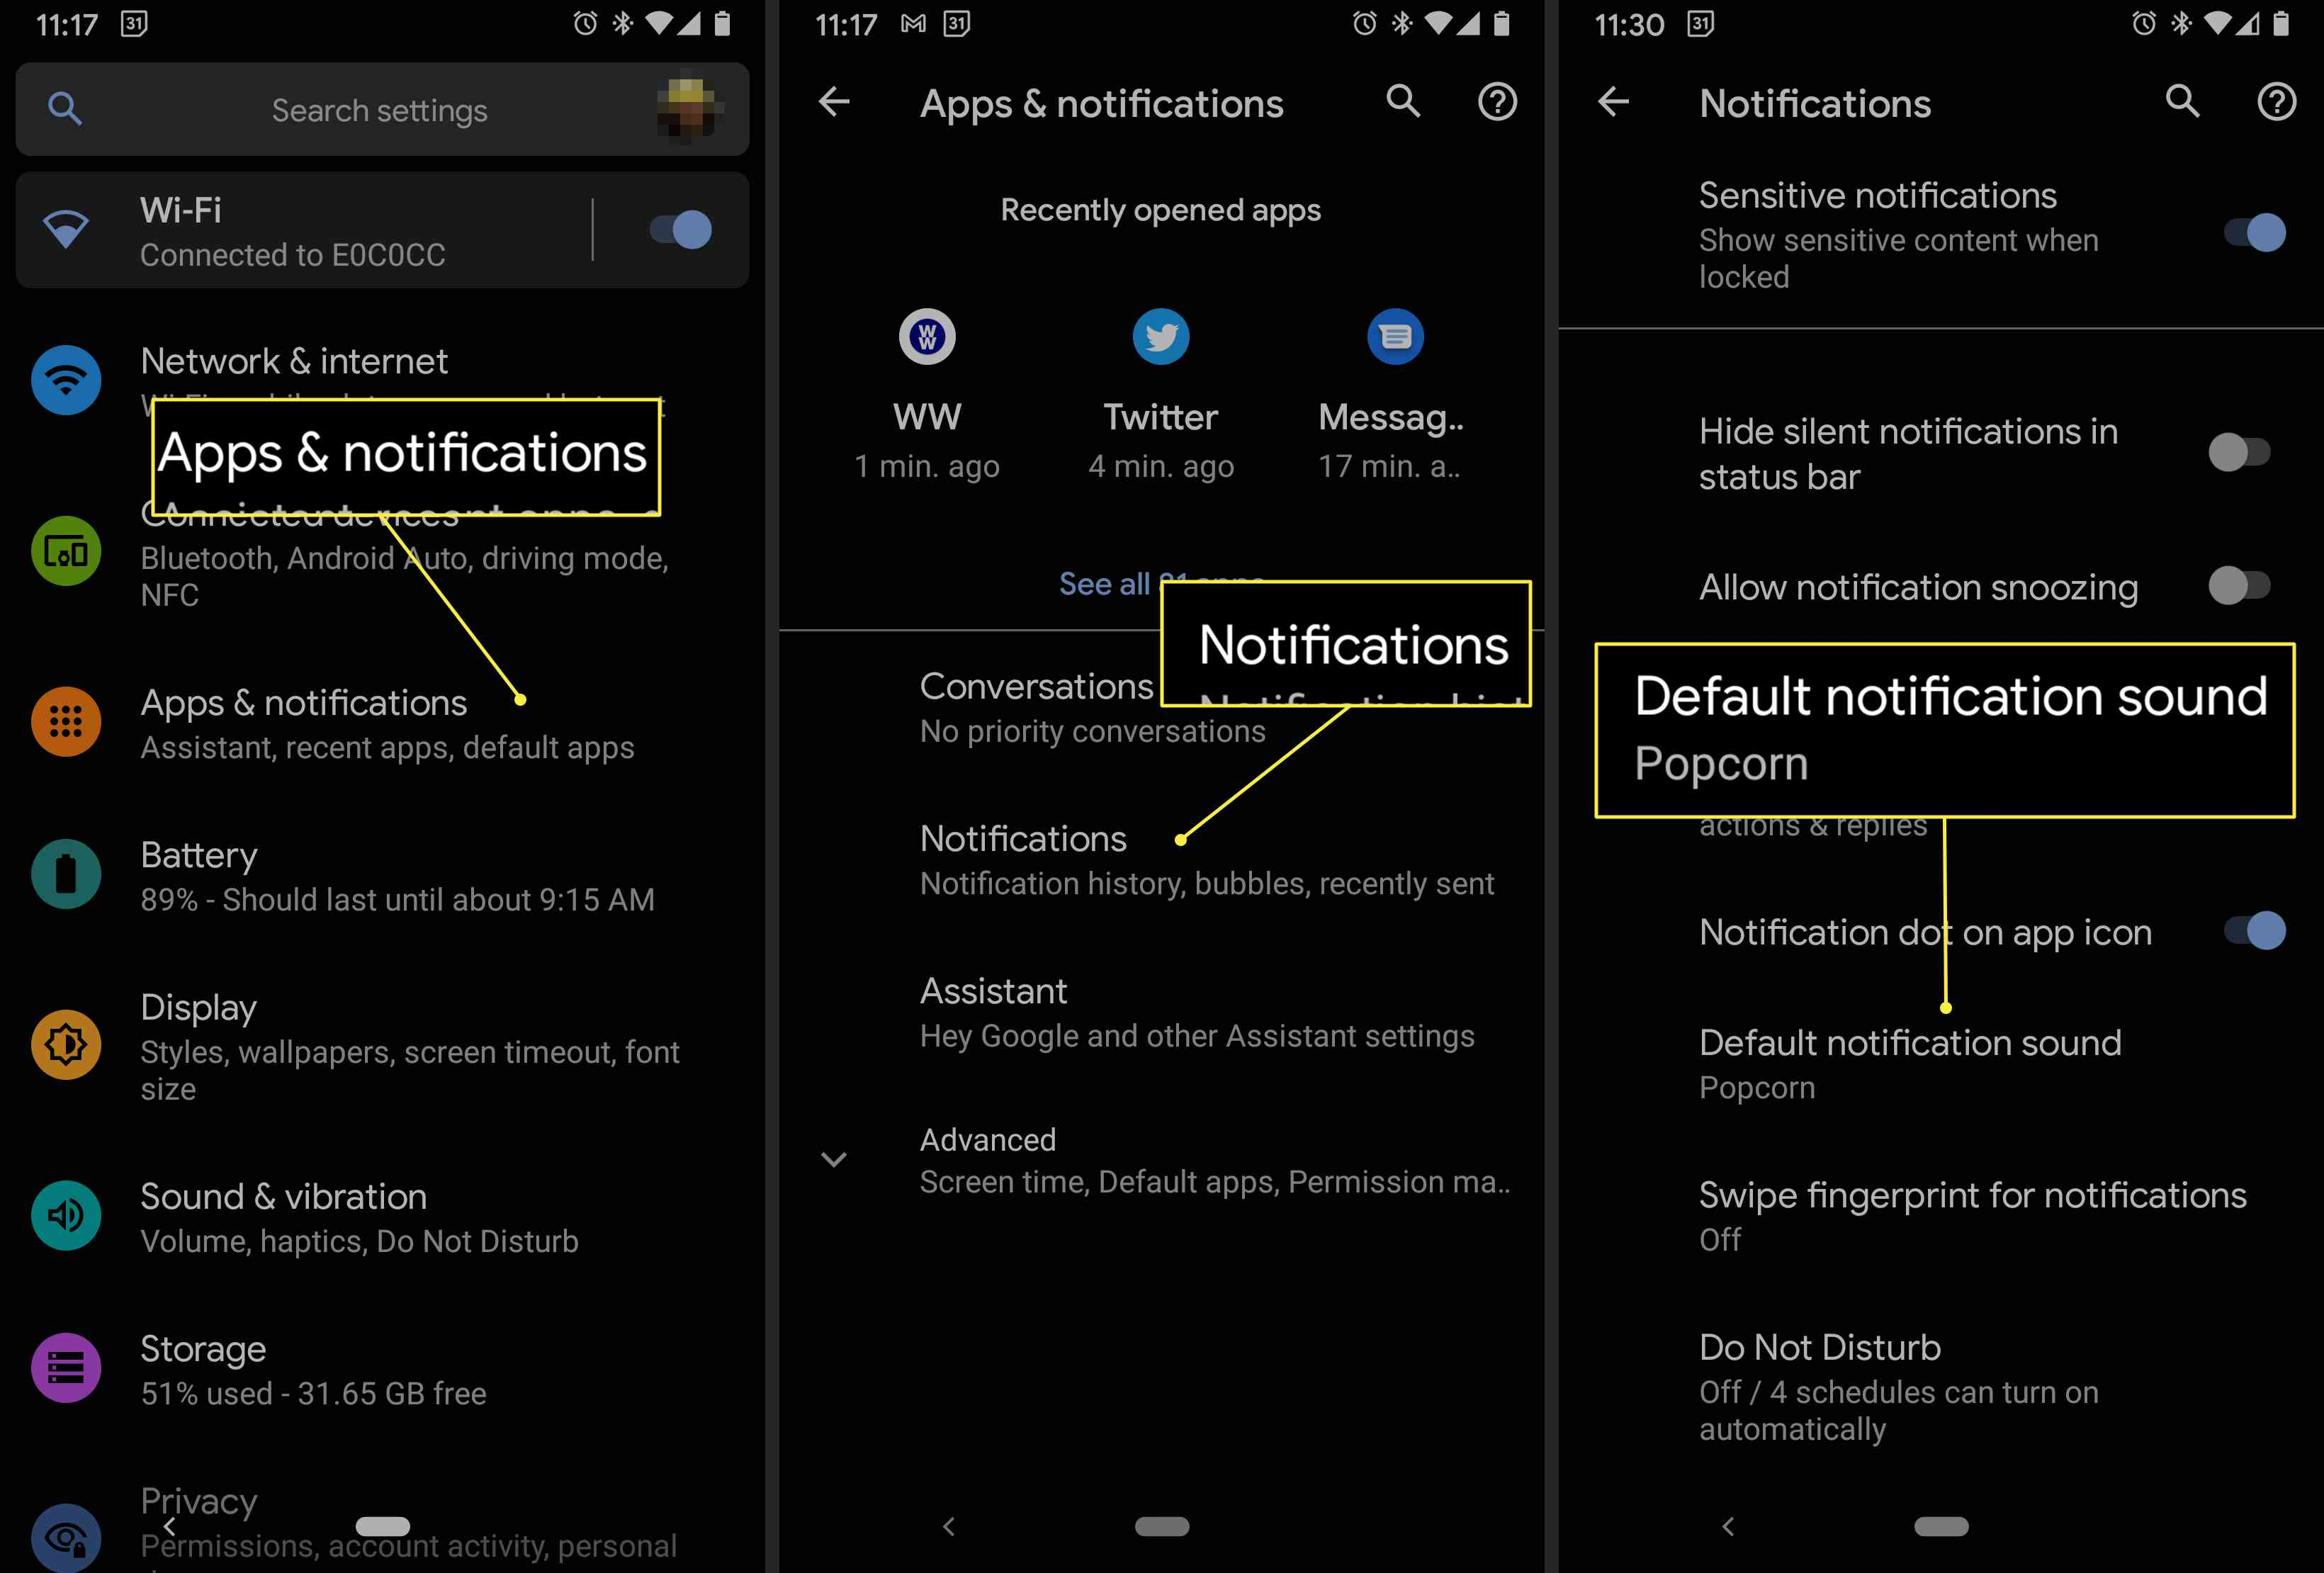 An Android user navigates to the Default notification sound option in settings